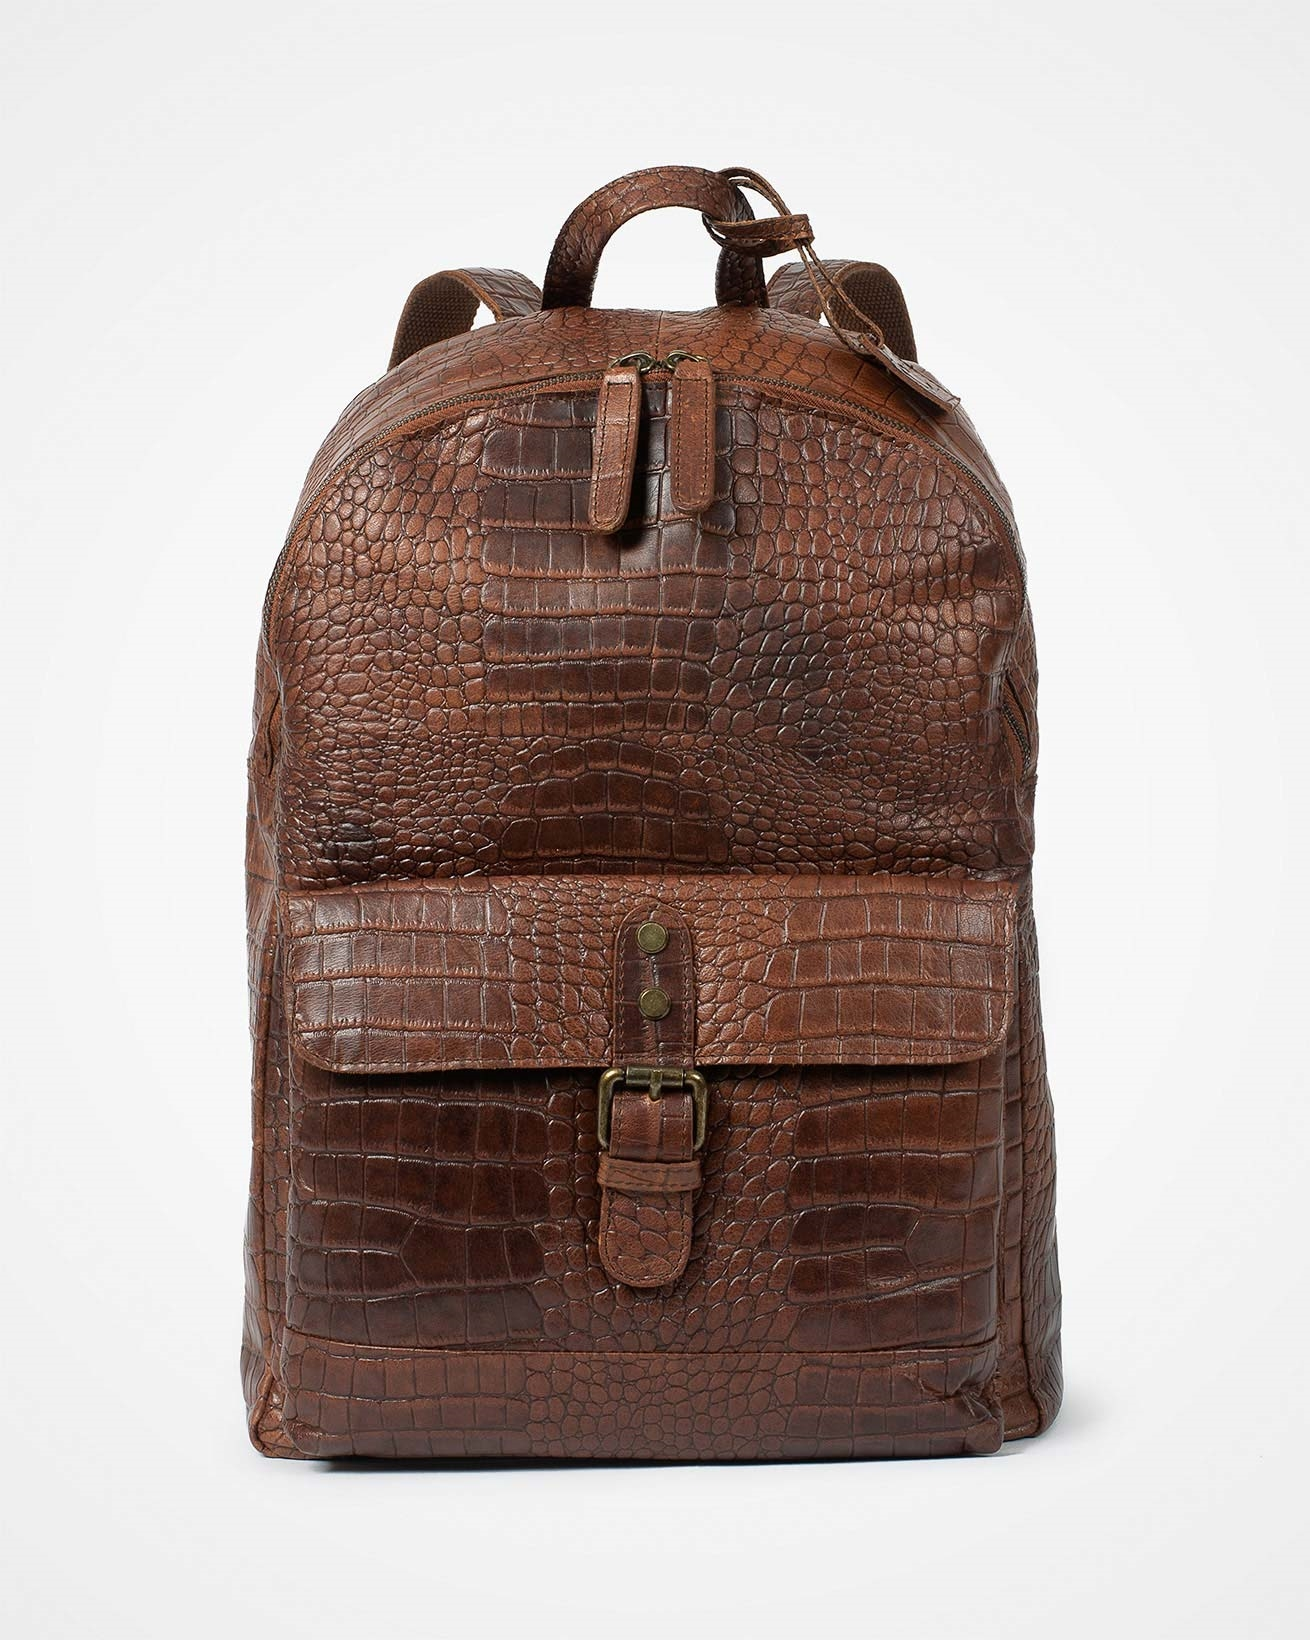 7733_rounded-rucksack_burnt-honey_front.jpg